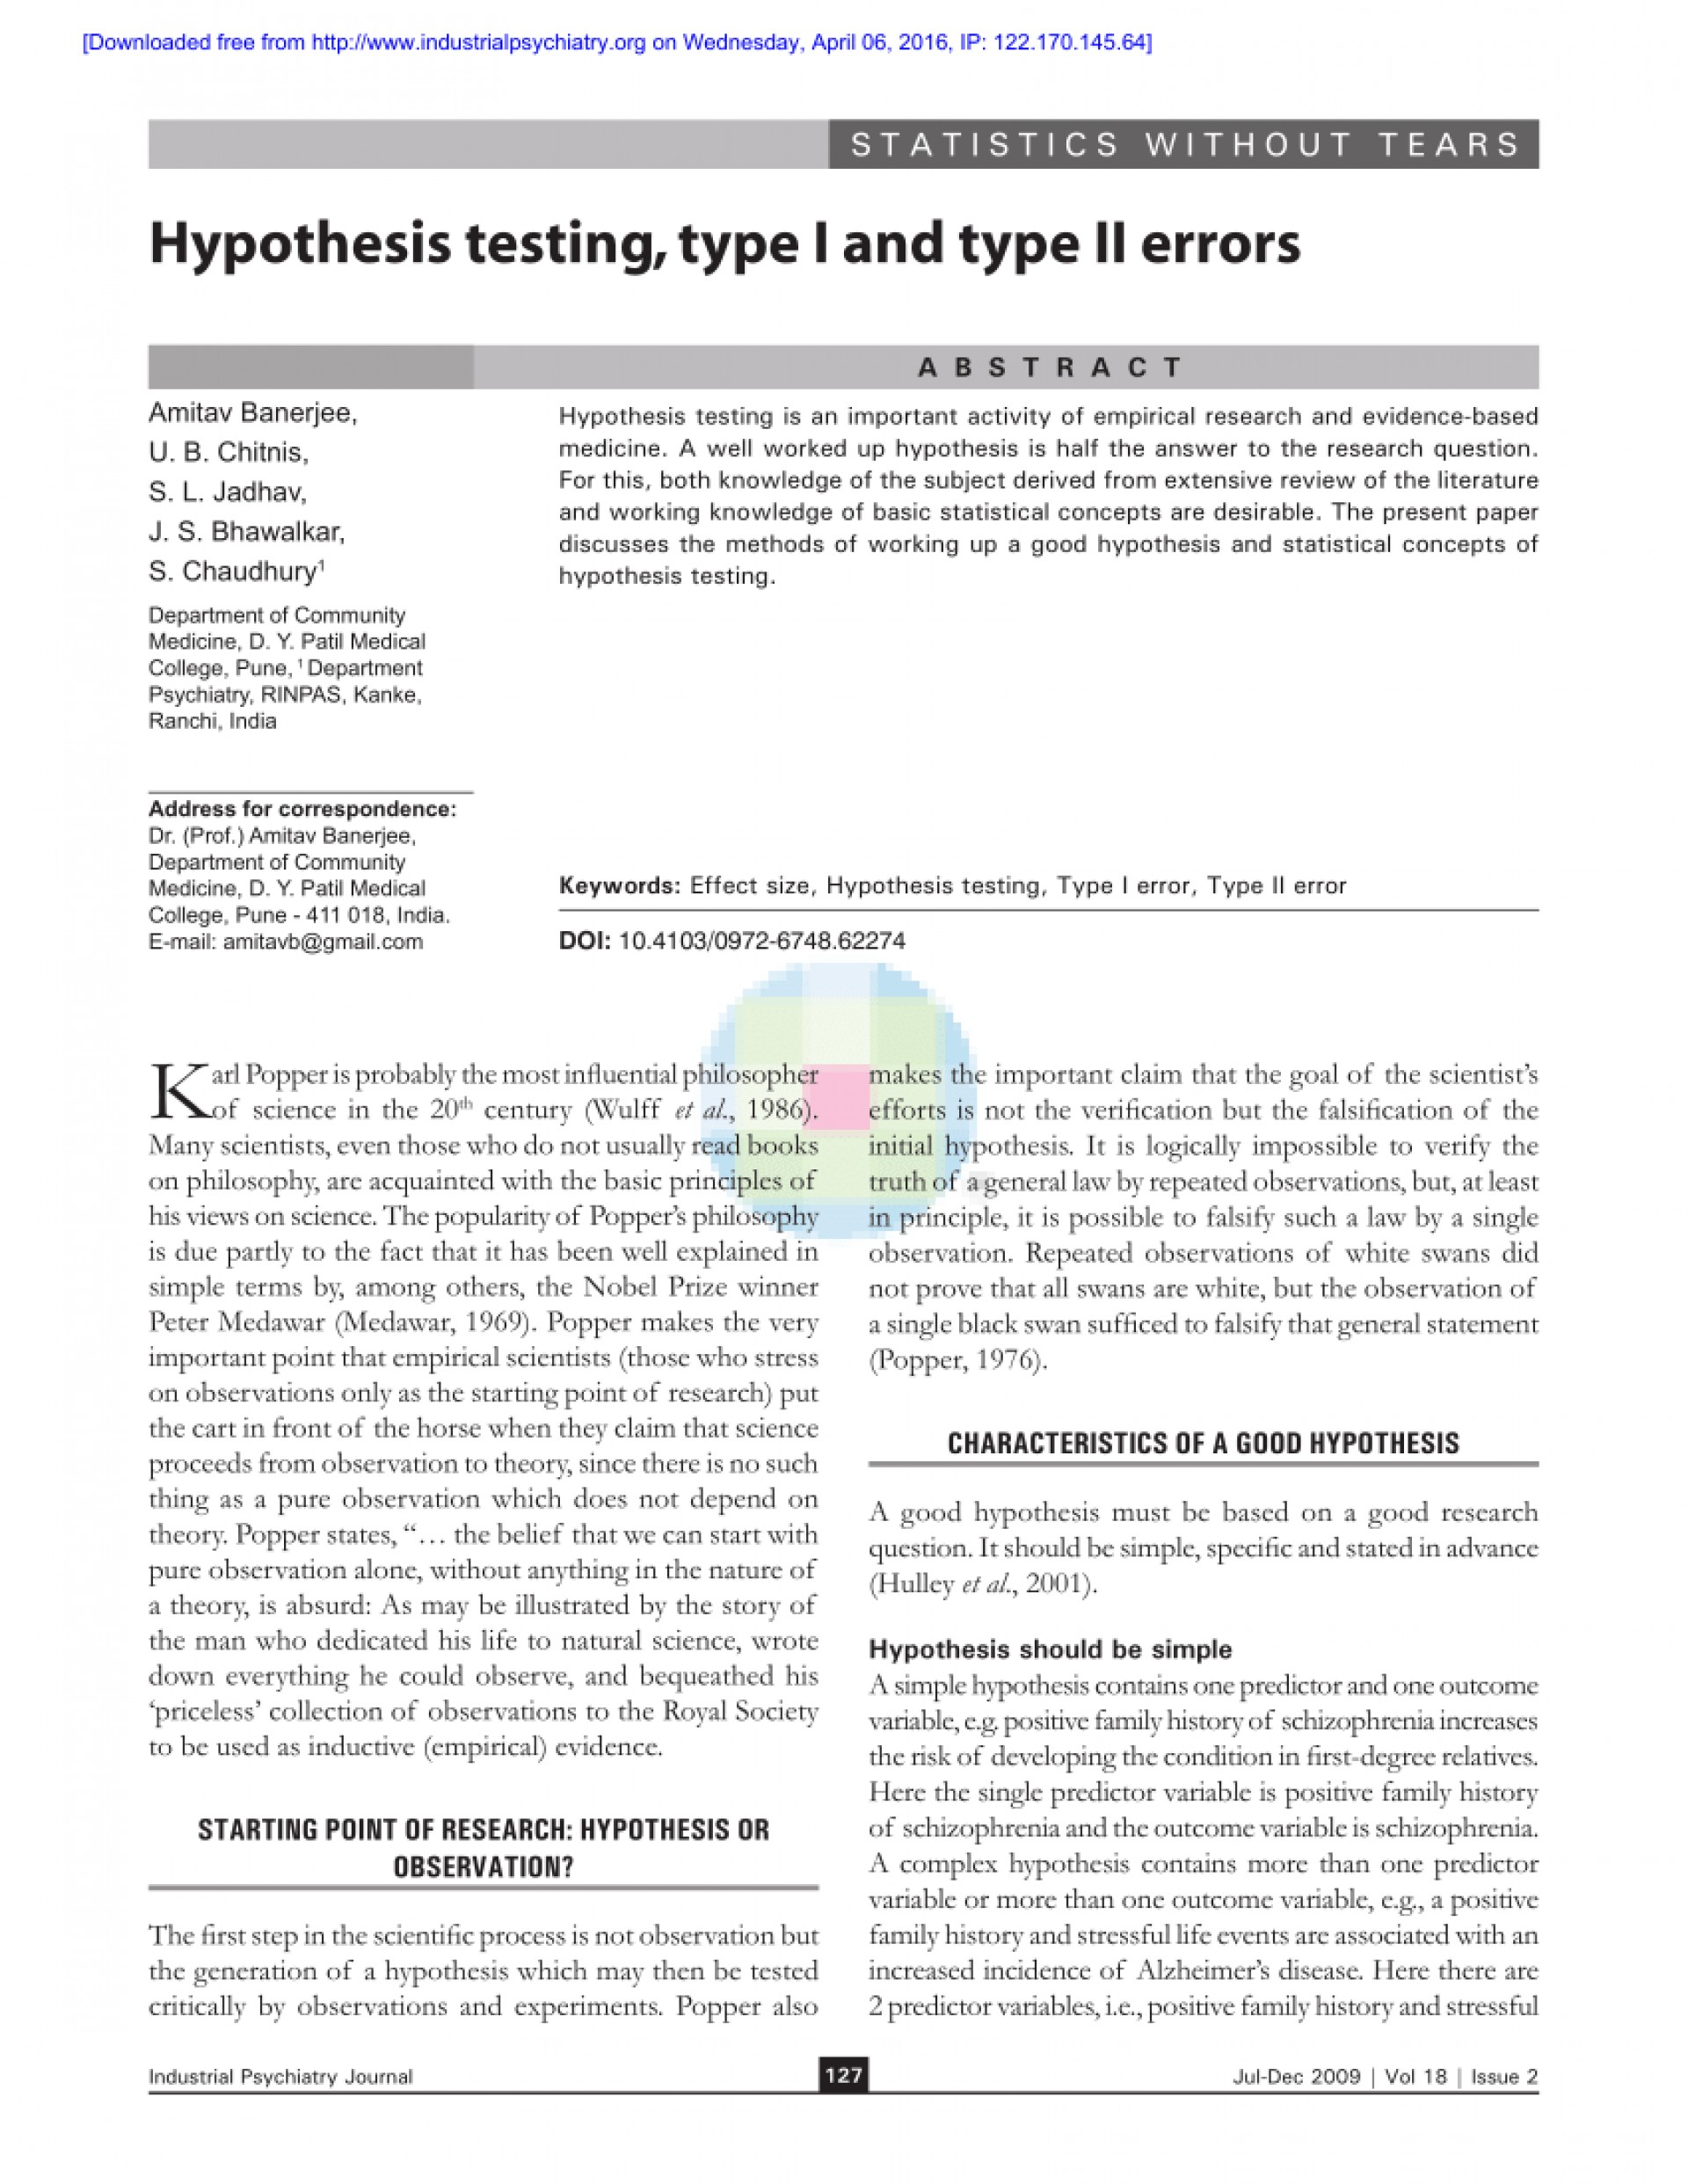 007 Largepreview Hypothesis Testing In Research Awesome Paper Pdf 1920